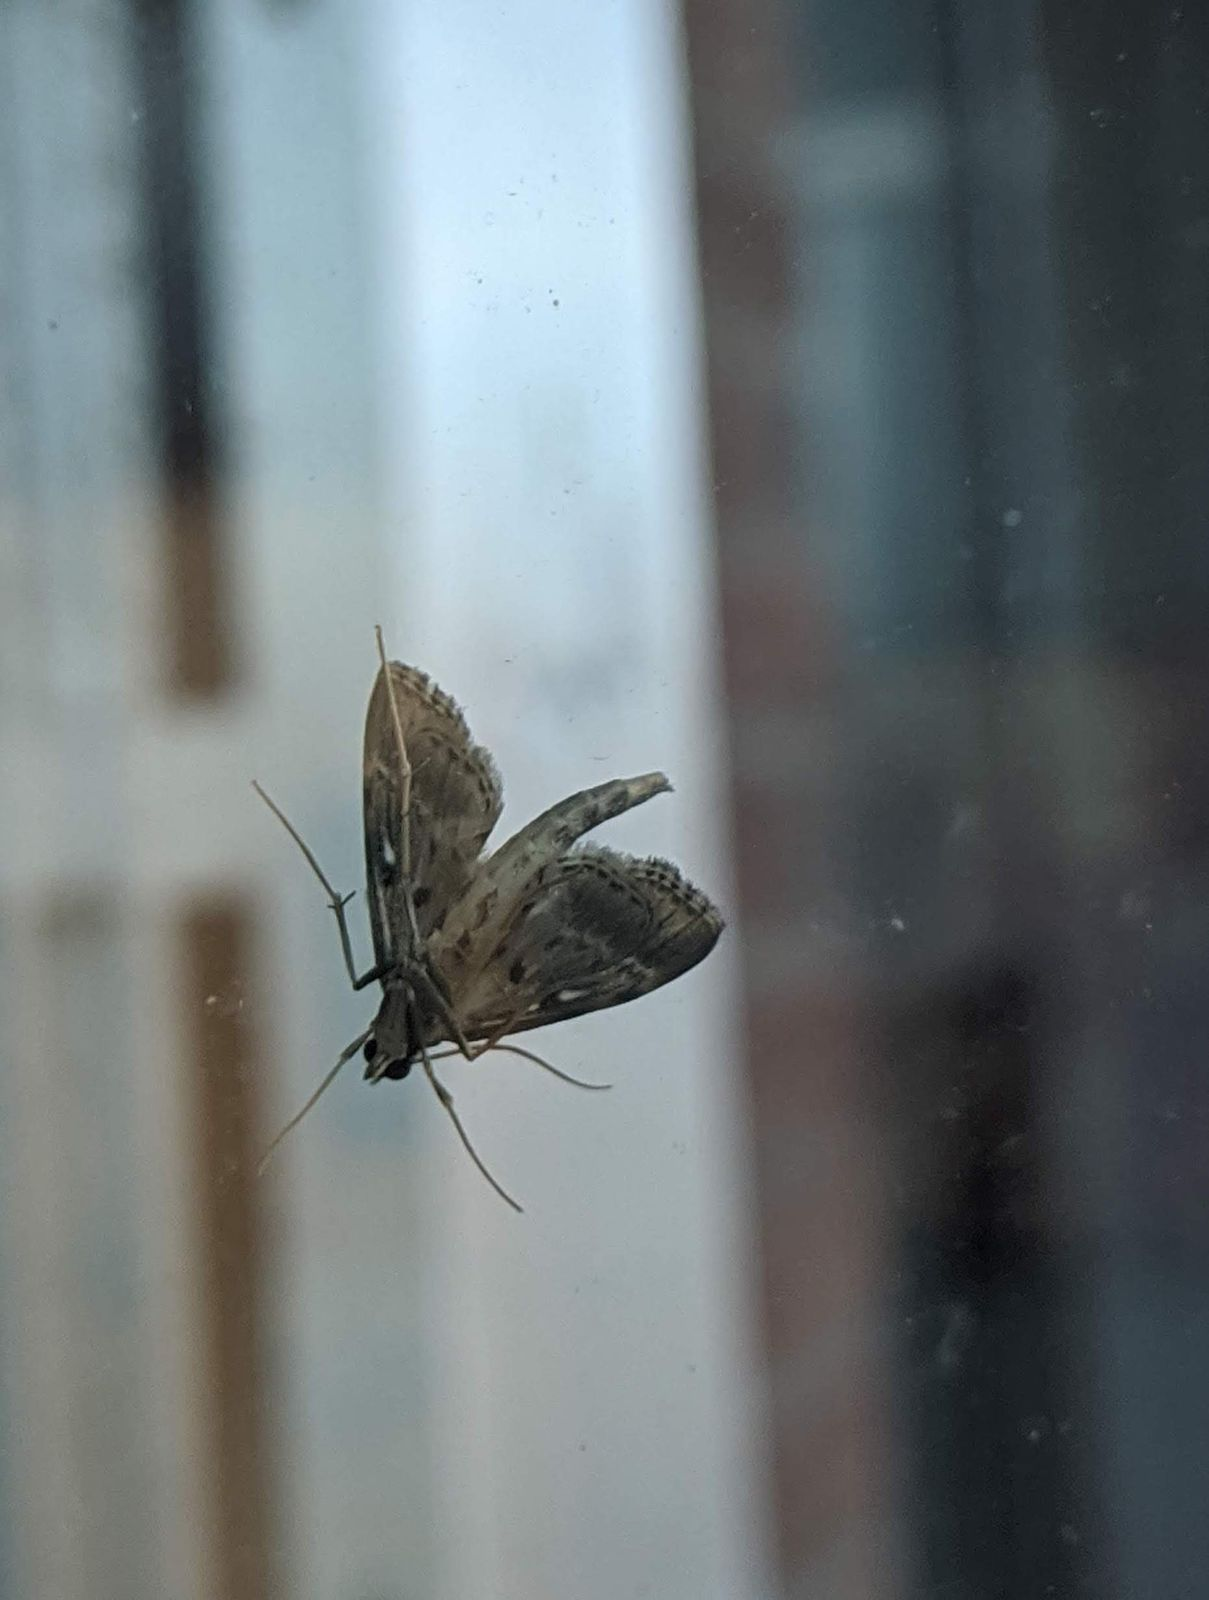 This little thing really wants to come back in! Social distance yourself, Moth!